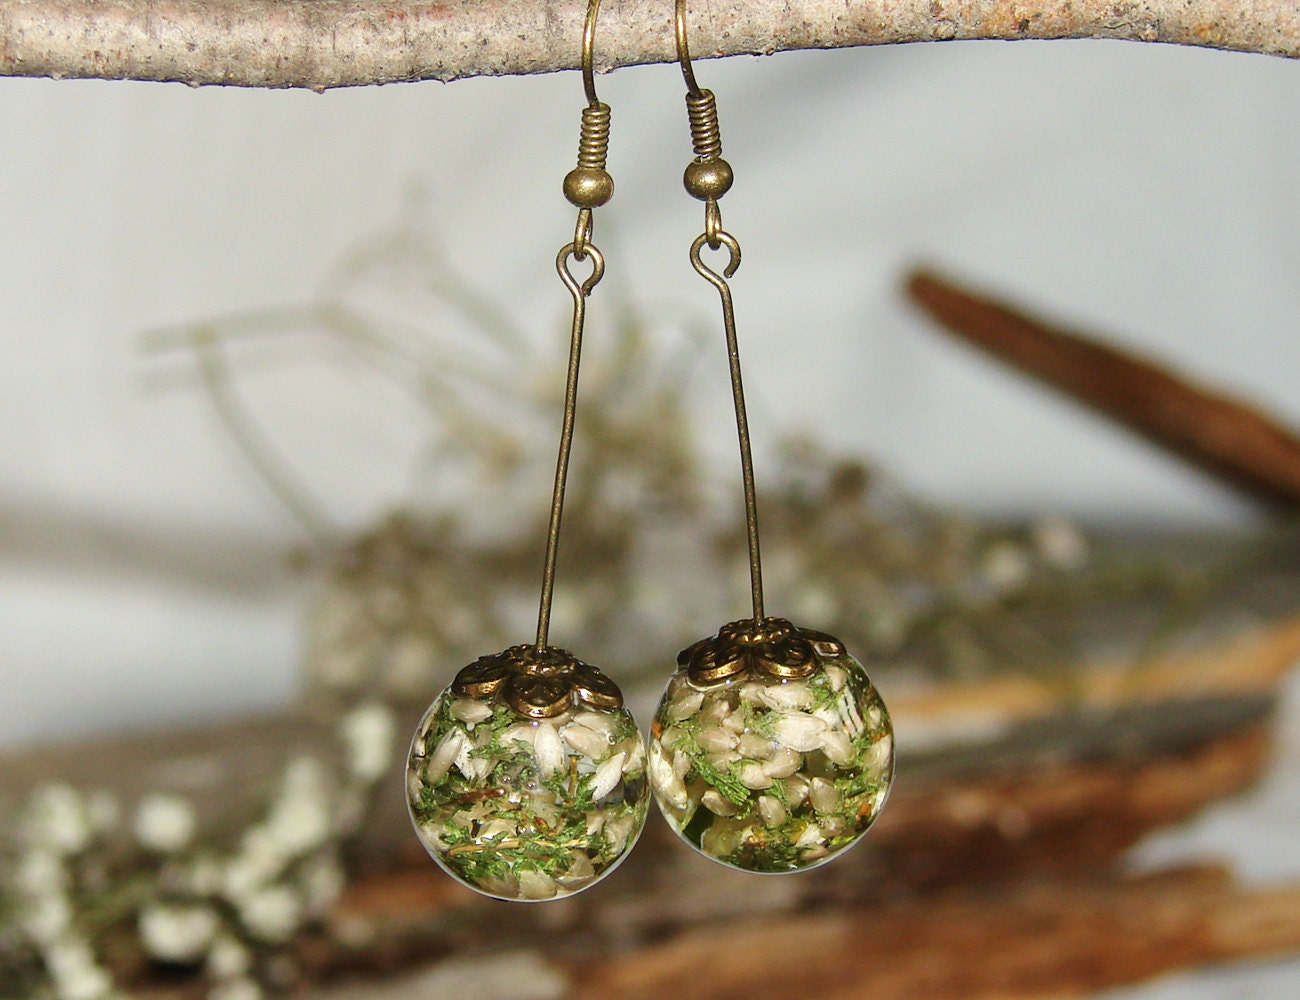 Real Flower Earrings Gift Resin Jewelry Art Earrings Dangle Etsy